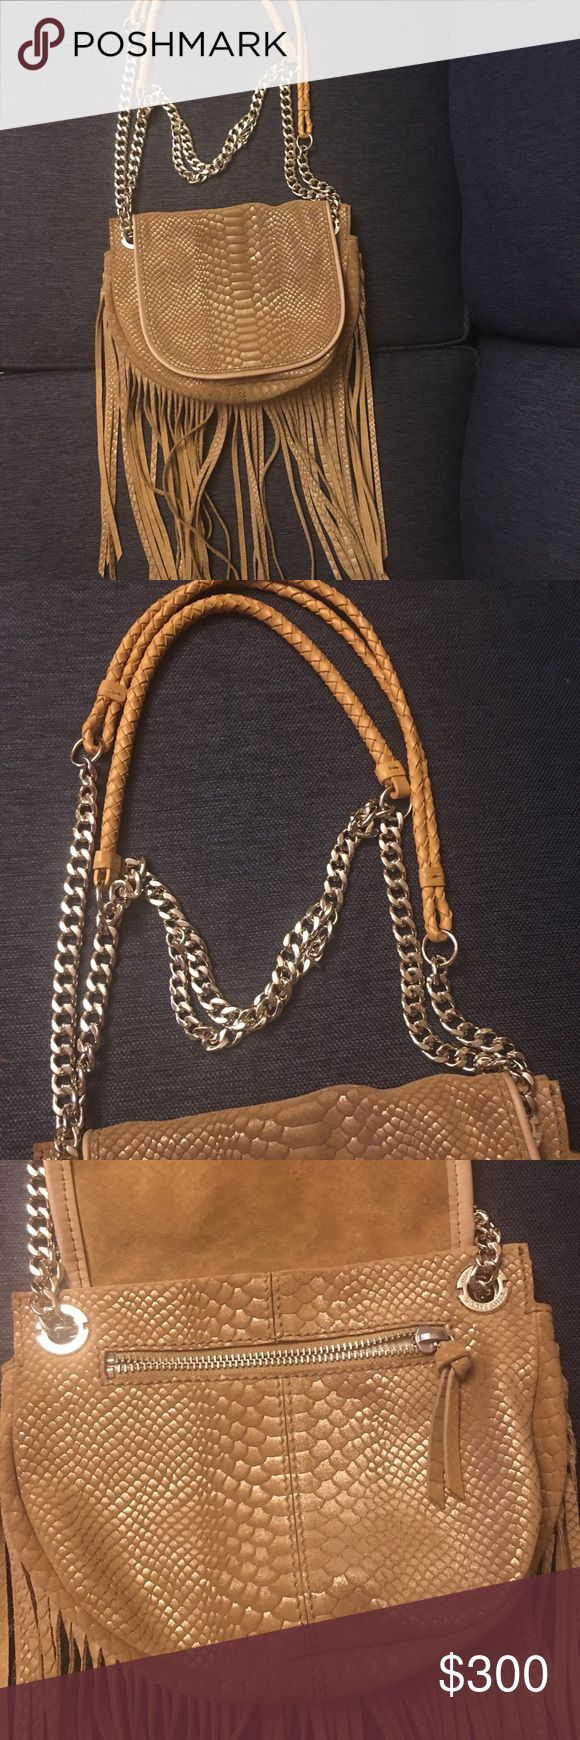 """Ramy Brook Camile fringed messenger leather bag This bag is a real statement piece. A Ramy Brook soft leather bag in a light cognac color. It has beautiful fringe (which measure about 11"""" long). It has a gold and leather strap which can be converted from shoulder to crossbody. The hardware is very solid and substantial. This little darling packs a punch. Definitely a conversation starter. It has a pocket in the front under the flap, another one on the back and a zippered one on the inside…"""